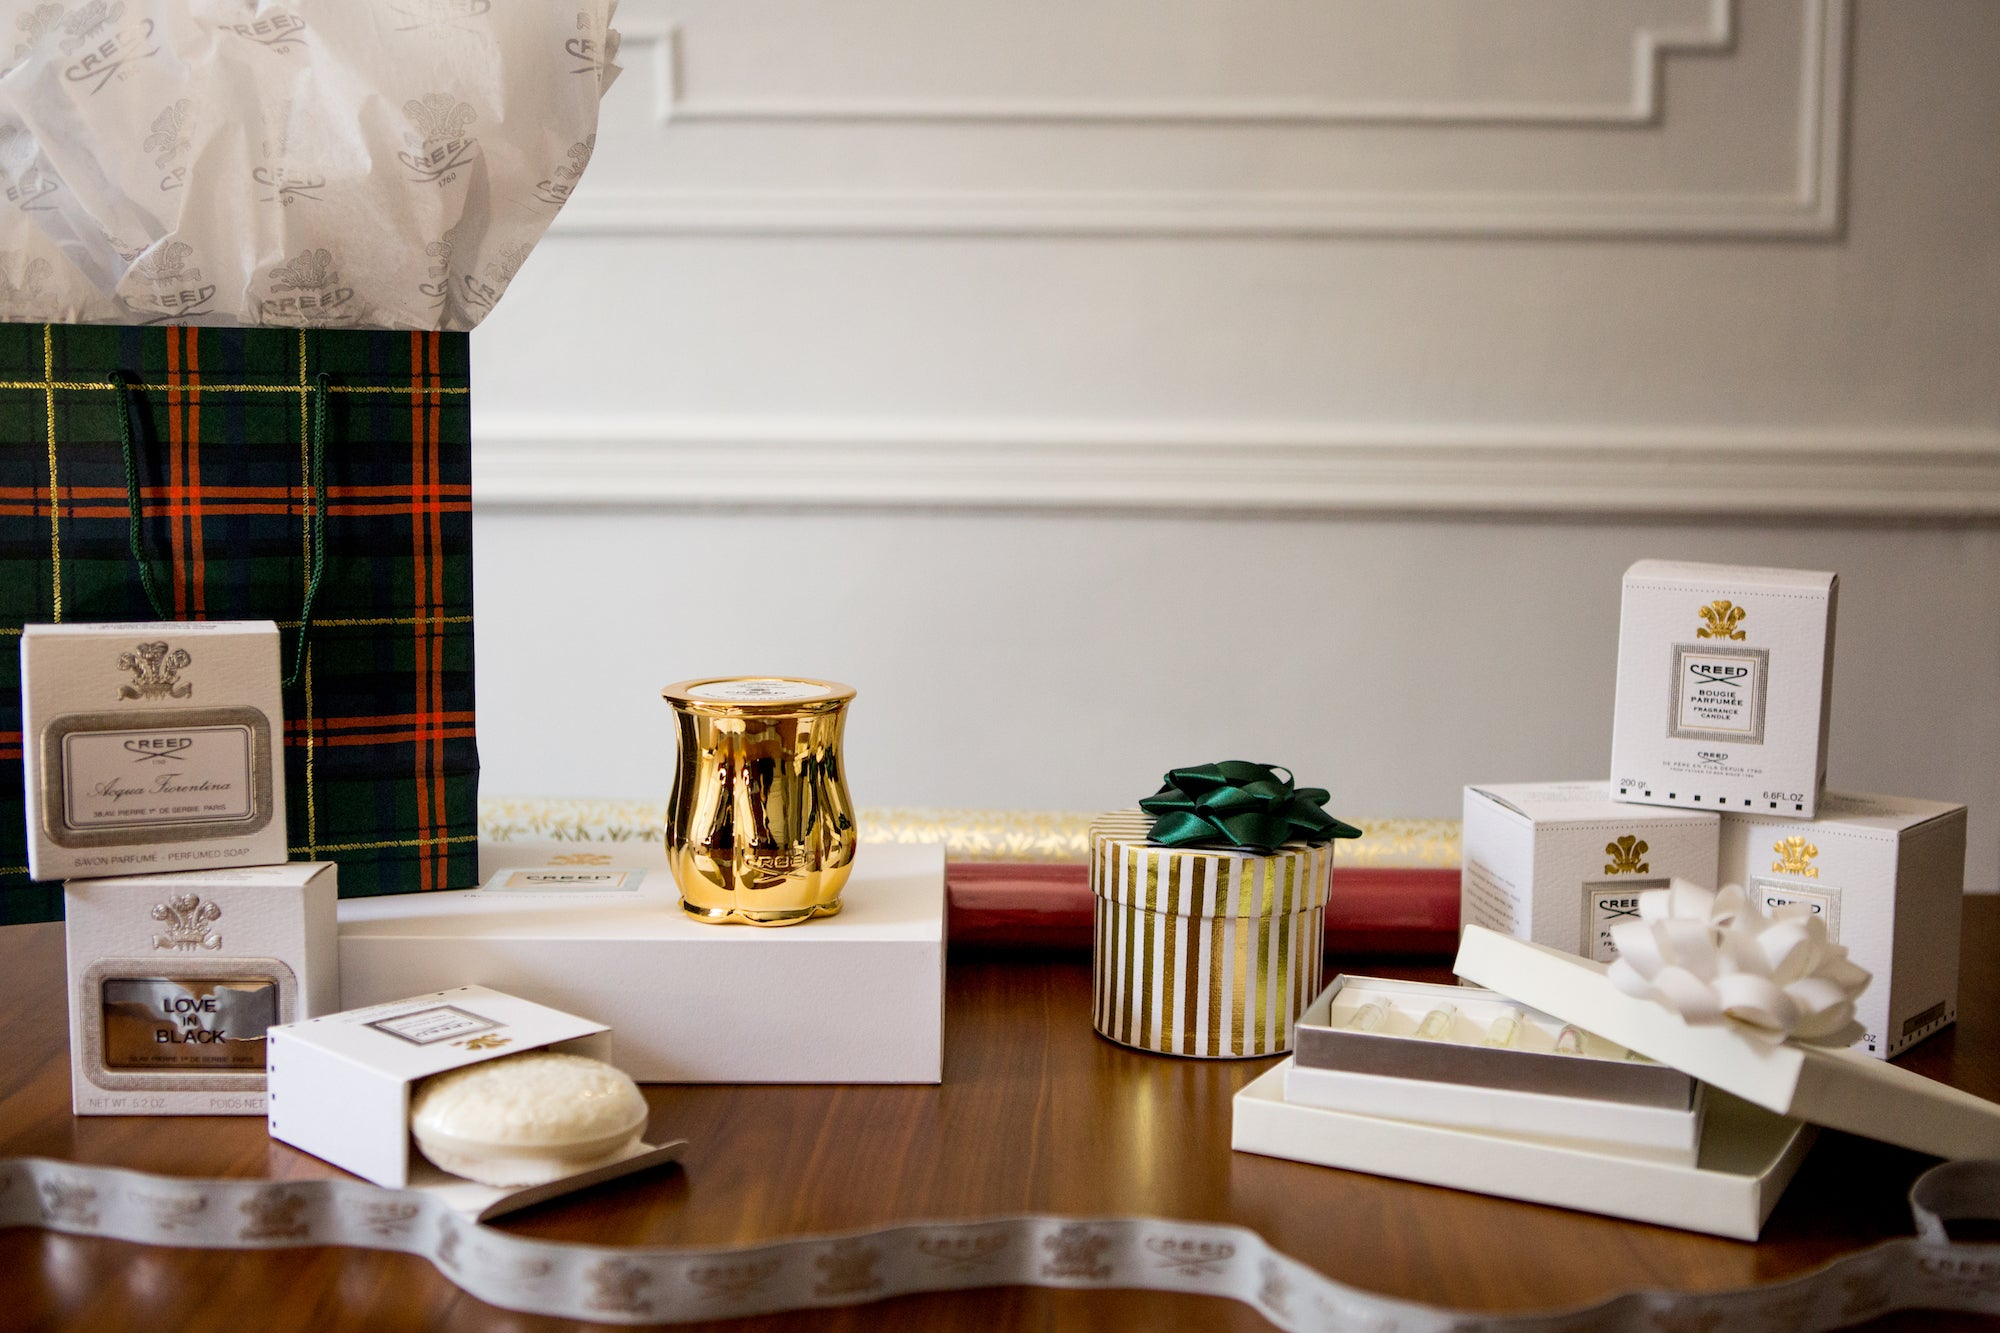 A CREED GIFT GUIDE INSPIRED BY DISCOVERY AND DESIRE